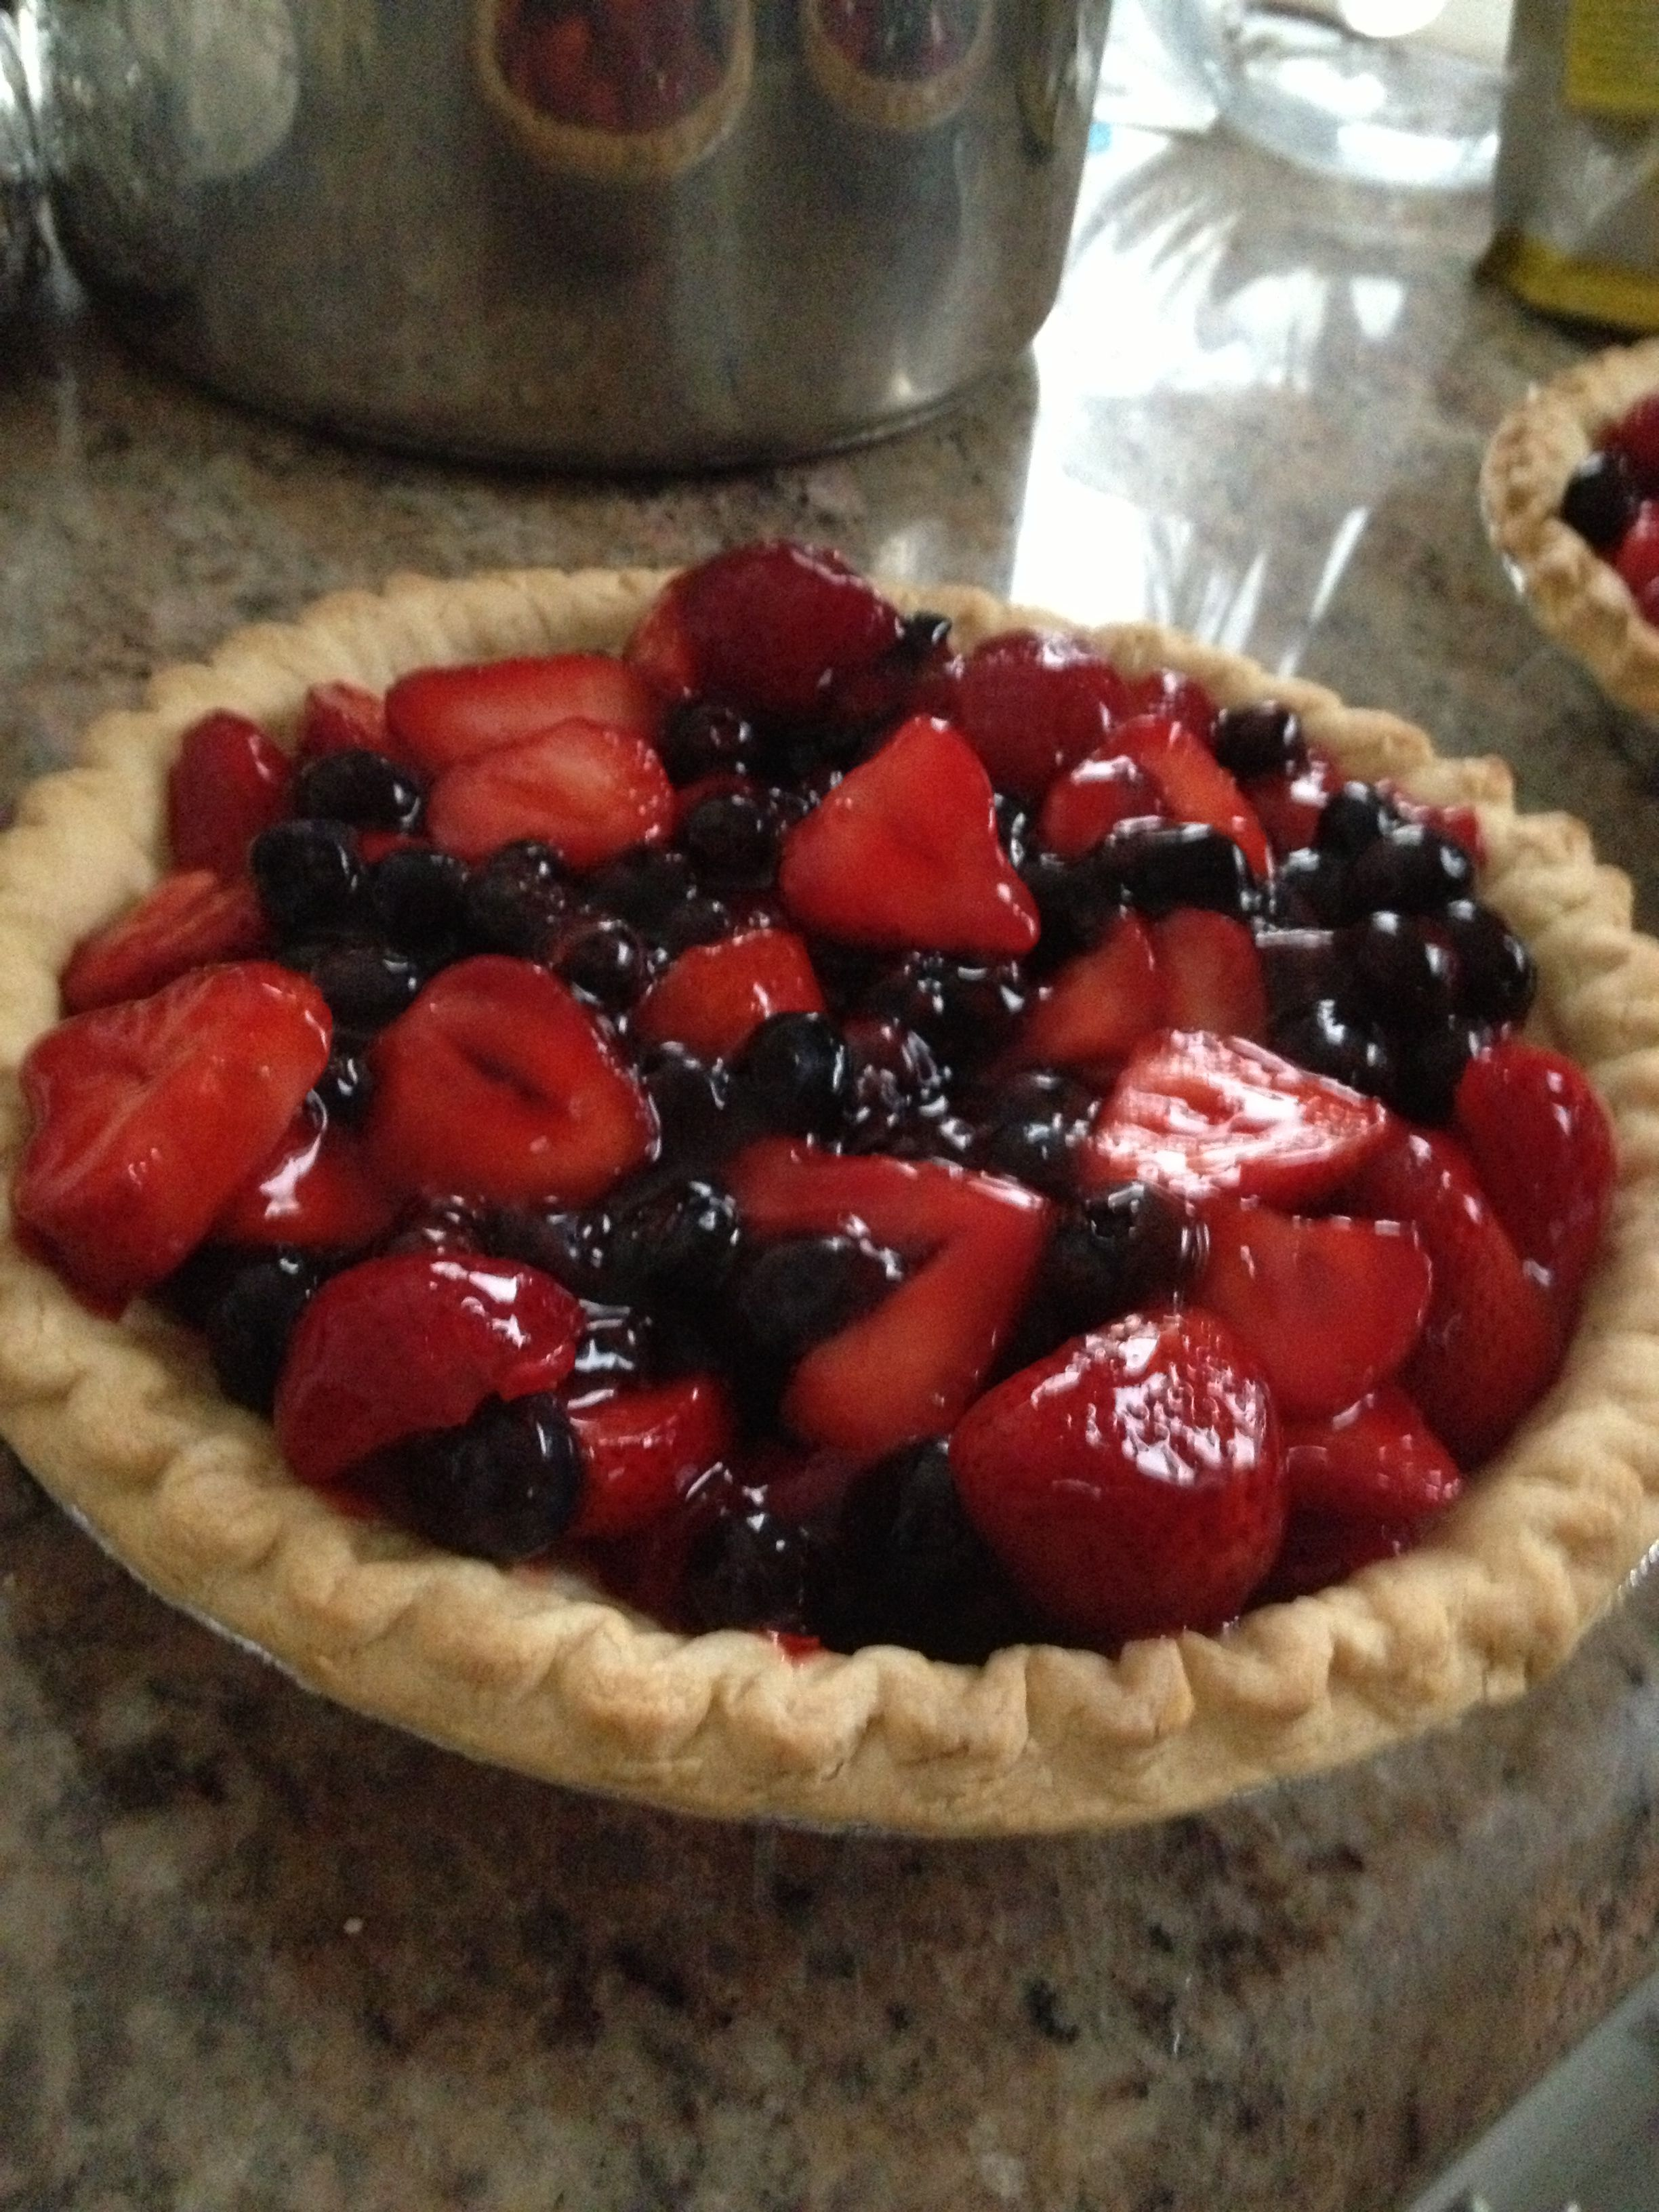 "4th of July food 3 pints of strawberries 2 pints of blueberries 1 pint of blackberries. Clean berries and mix in glaze. Bake 2 pies shells ""I use store-brand deep dish"". Let pie shells cool. Then put berry mixture into pie shells.Refrigerate for at least an hour then serve with whip cream."